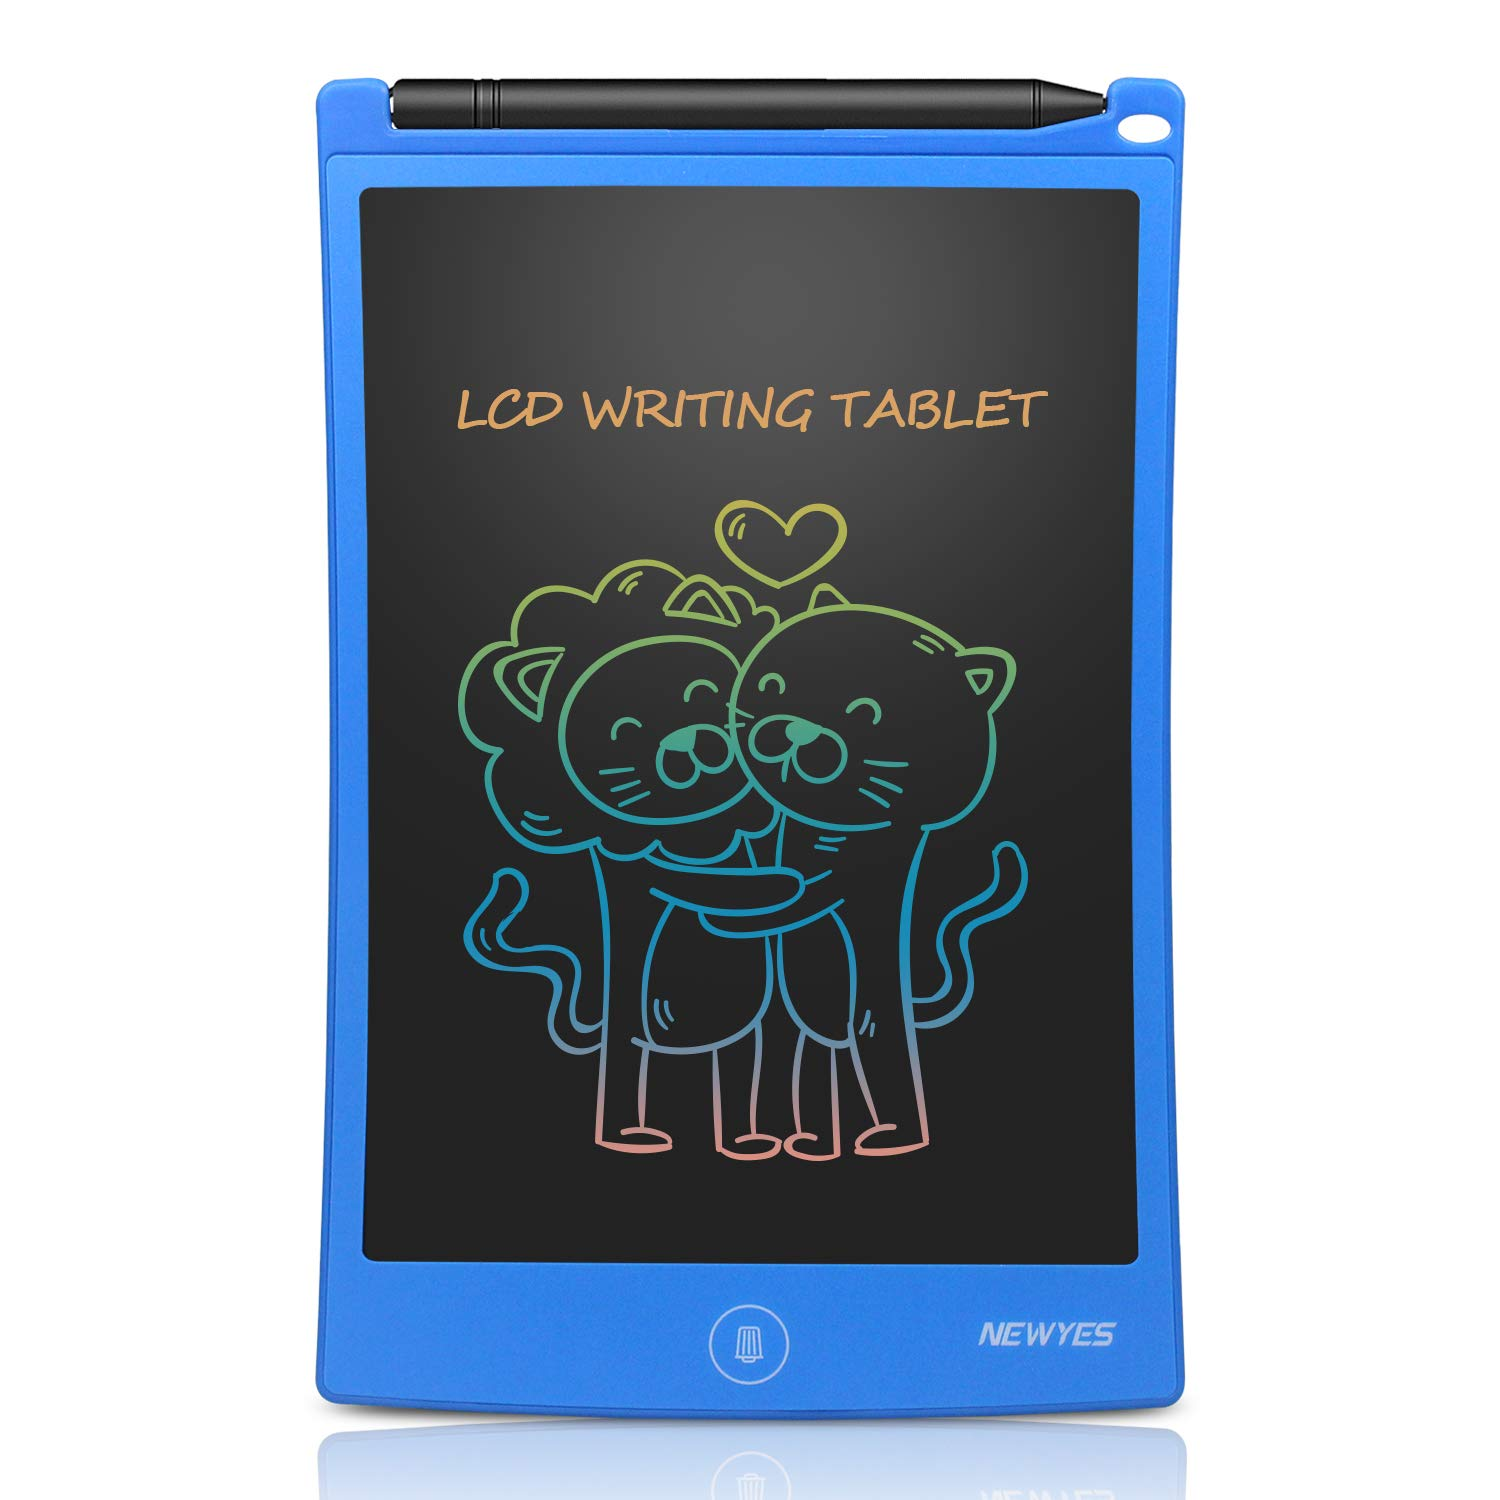 NEWYES 8.5 Inches Colorful Doodle Board LCD Screen Writing Tablet Magnetic Drawing Board Erasable Doodles Notepad Gifts for Ages 3 Black